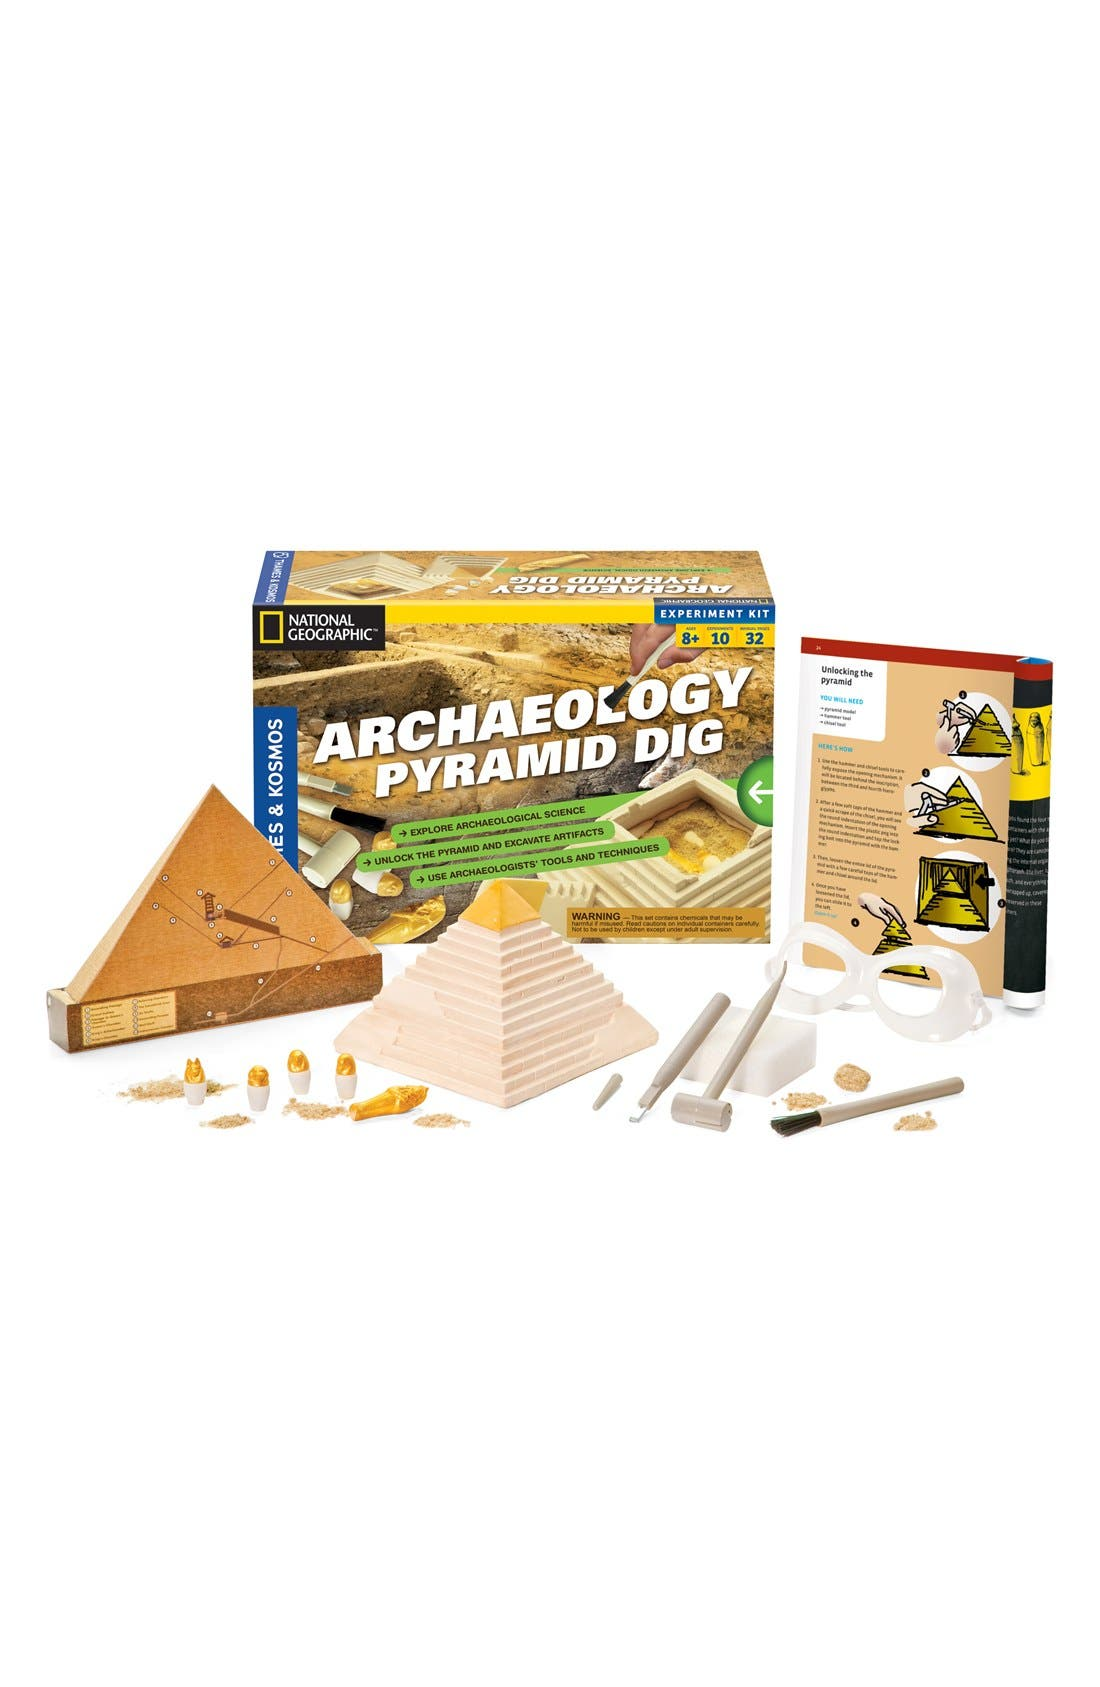 'Archaeology: Pyramid Dig 2.0' Play Kit,                             Main thumbnail 1, color,                             None